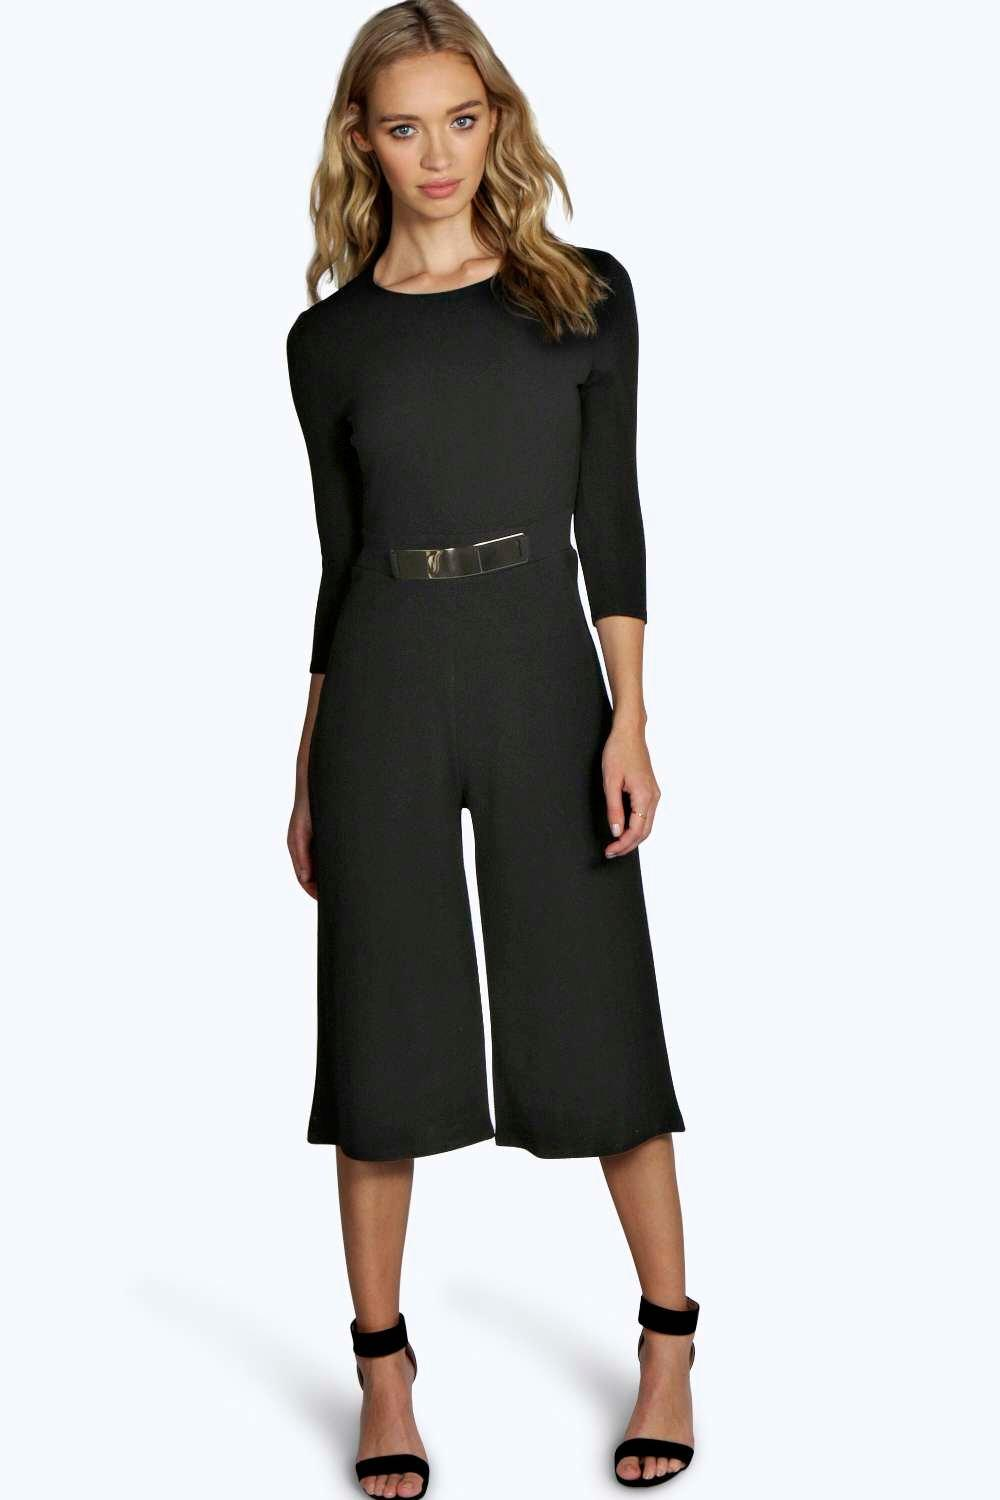 Ella 3/4 Sleeve Plate Belt Tailored Culotte Jumpsuit at boohoo.com